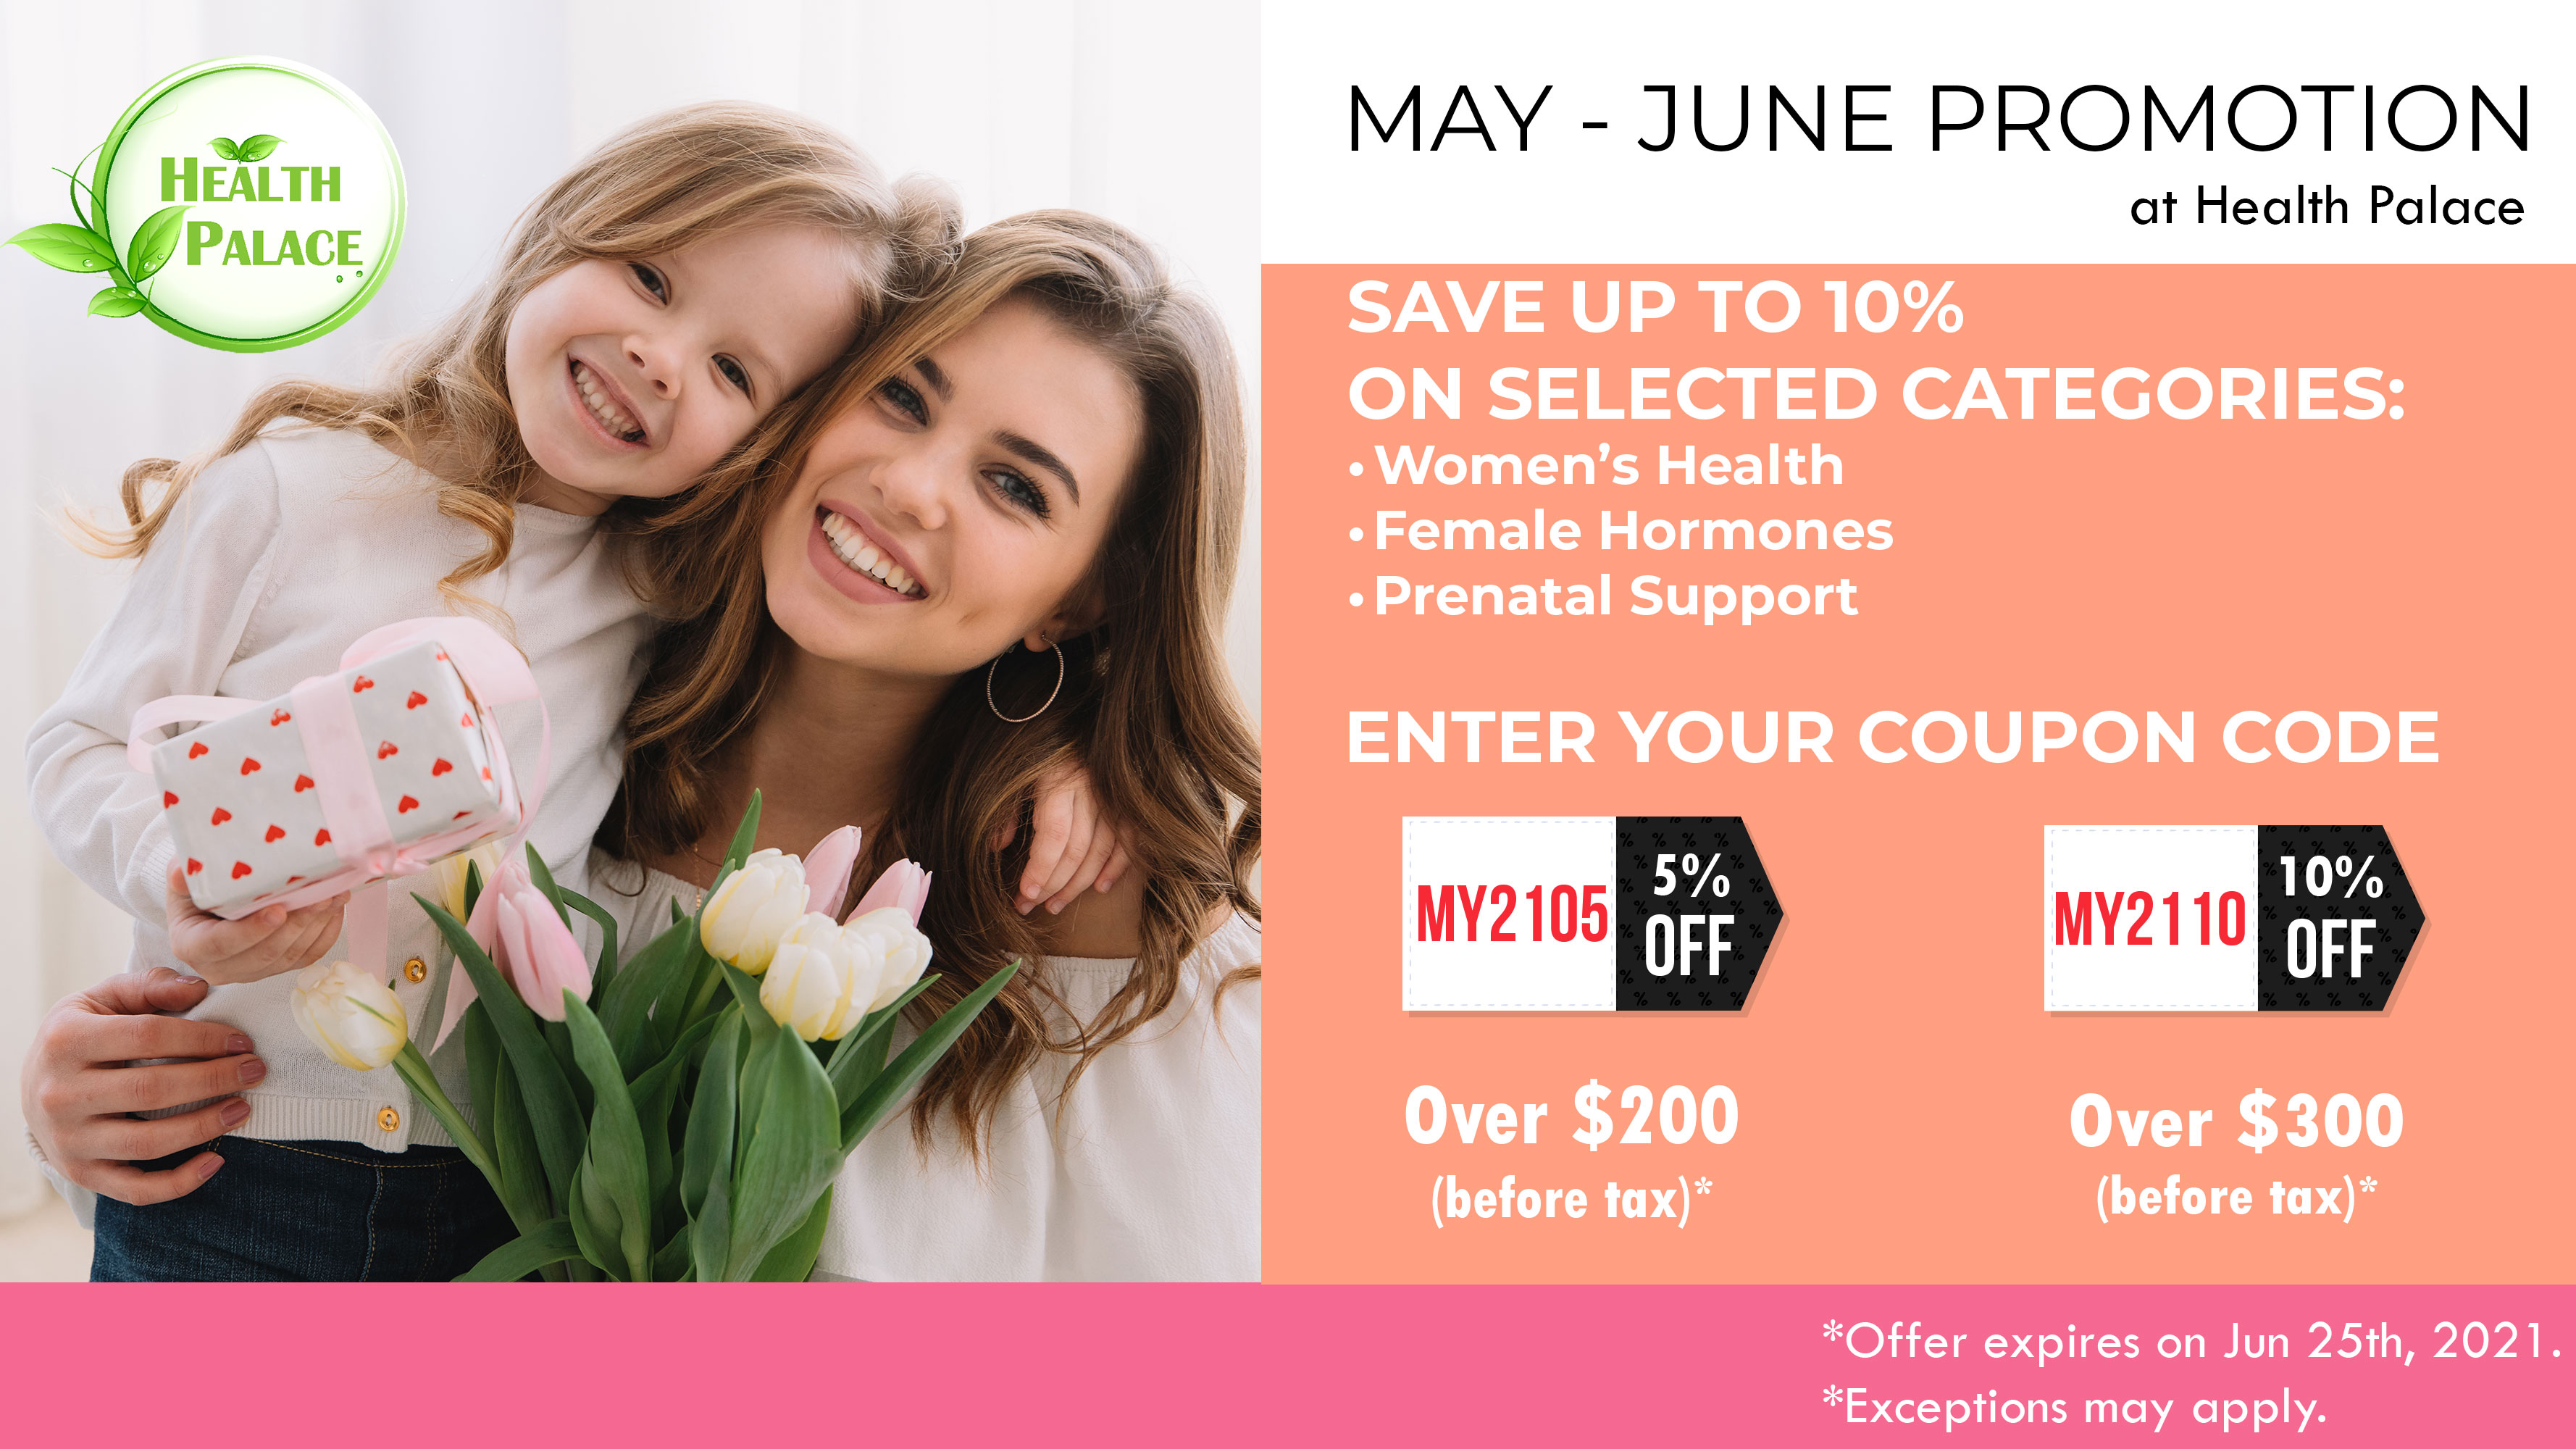 may-promotion-21-health-palace.jpg